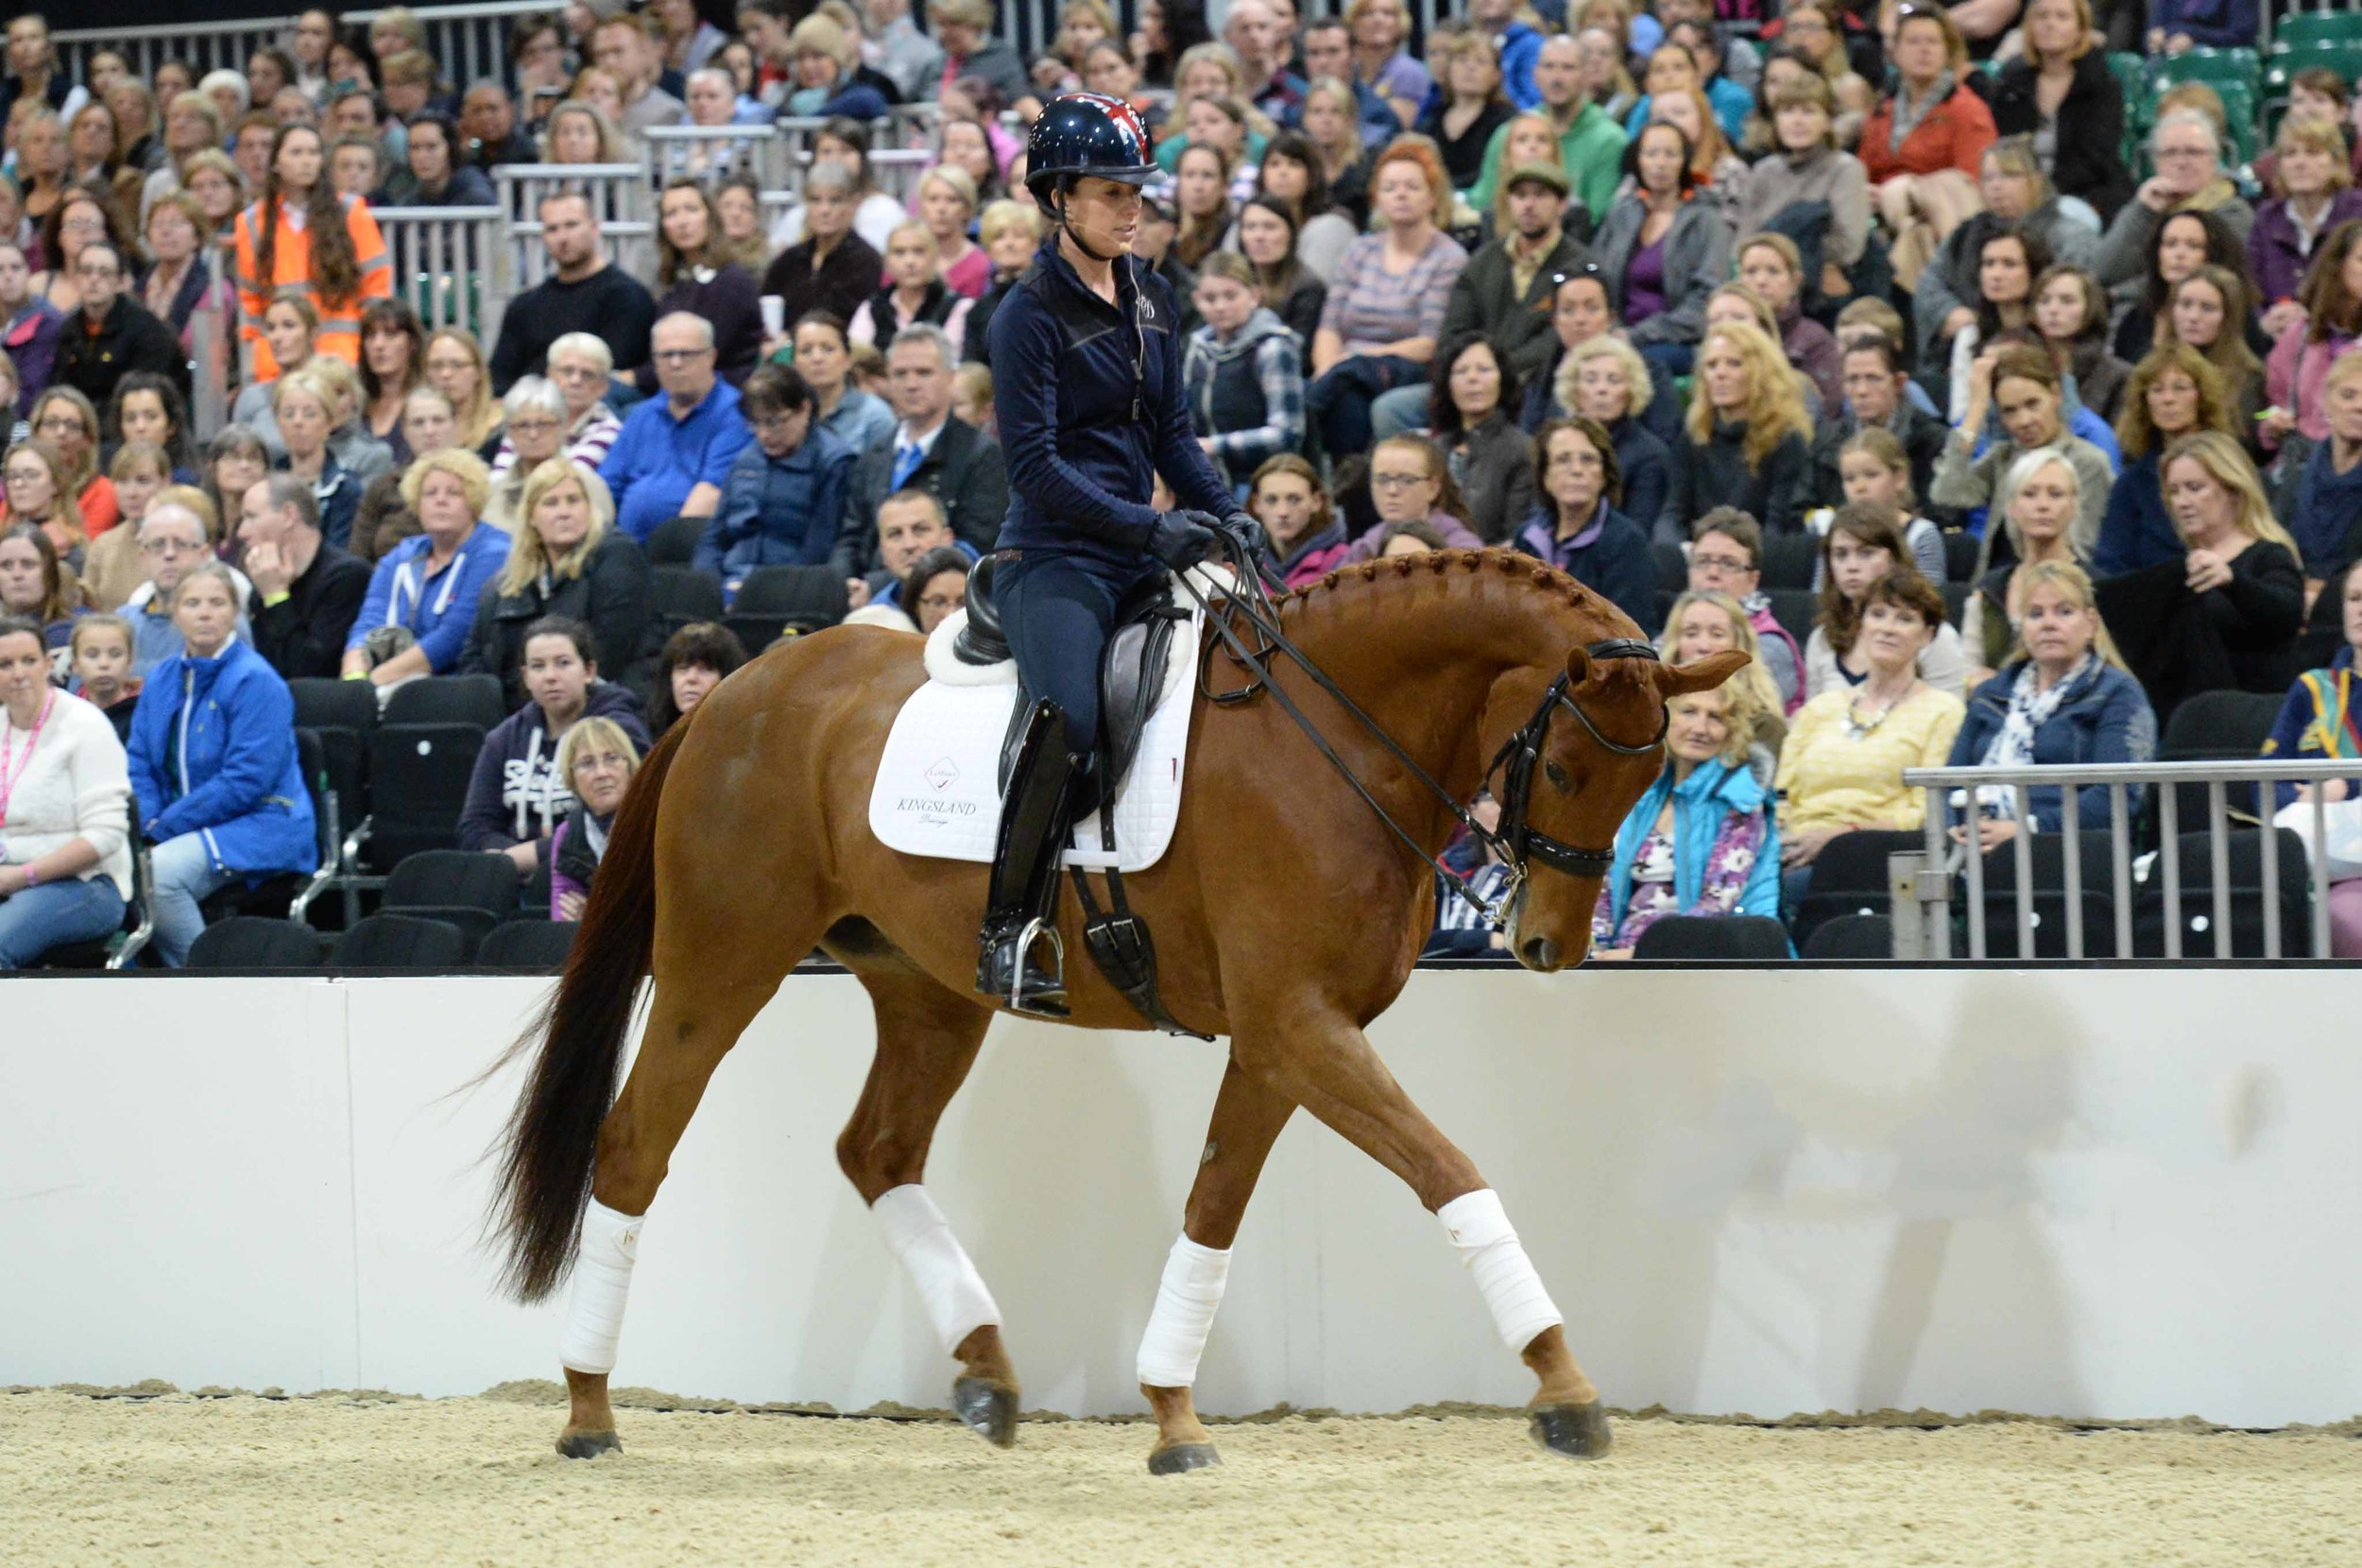 Charlotte Dujardin, pictured here at Your Horse Live 2015, knows just how to keep her cool at a competition.